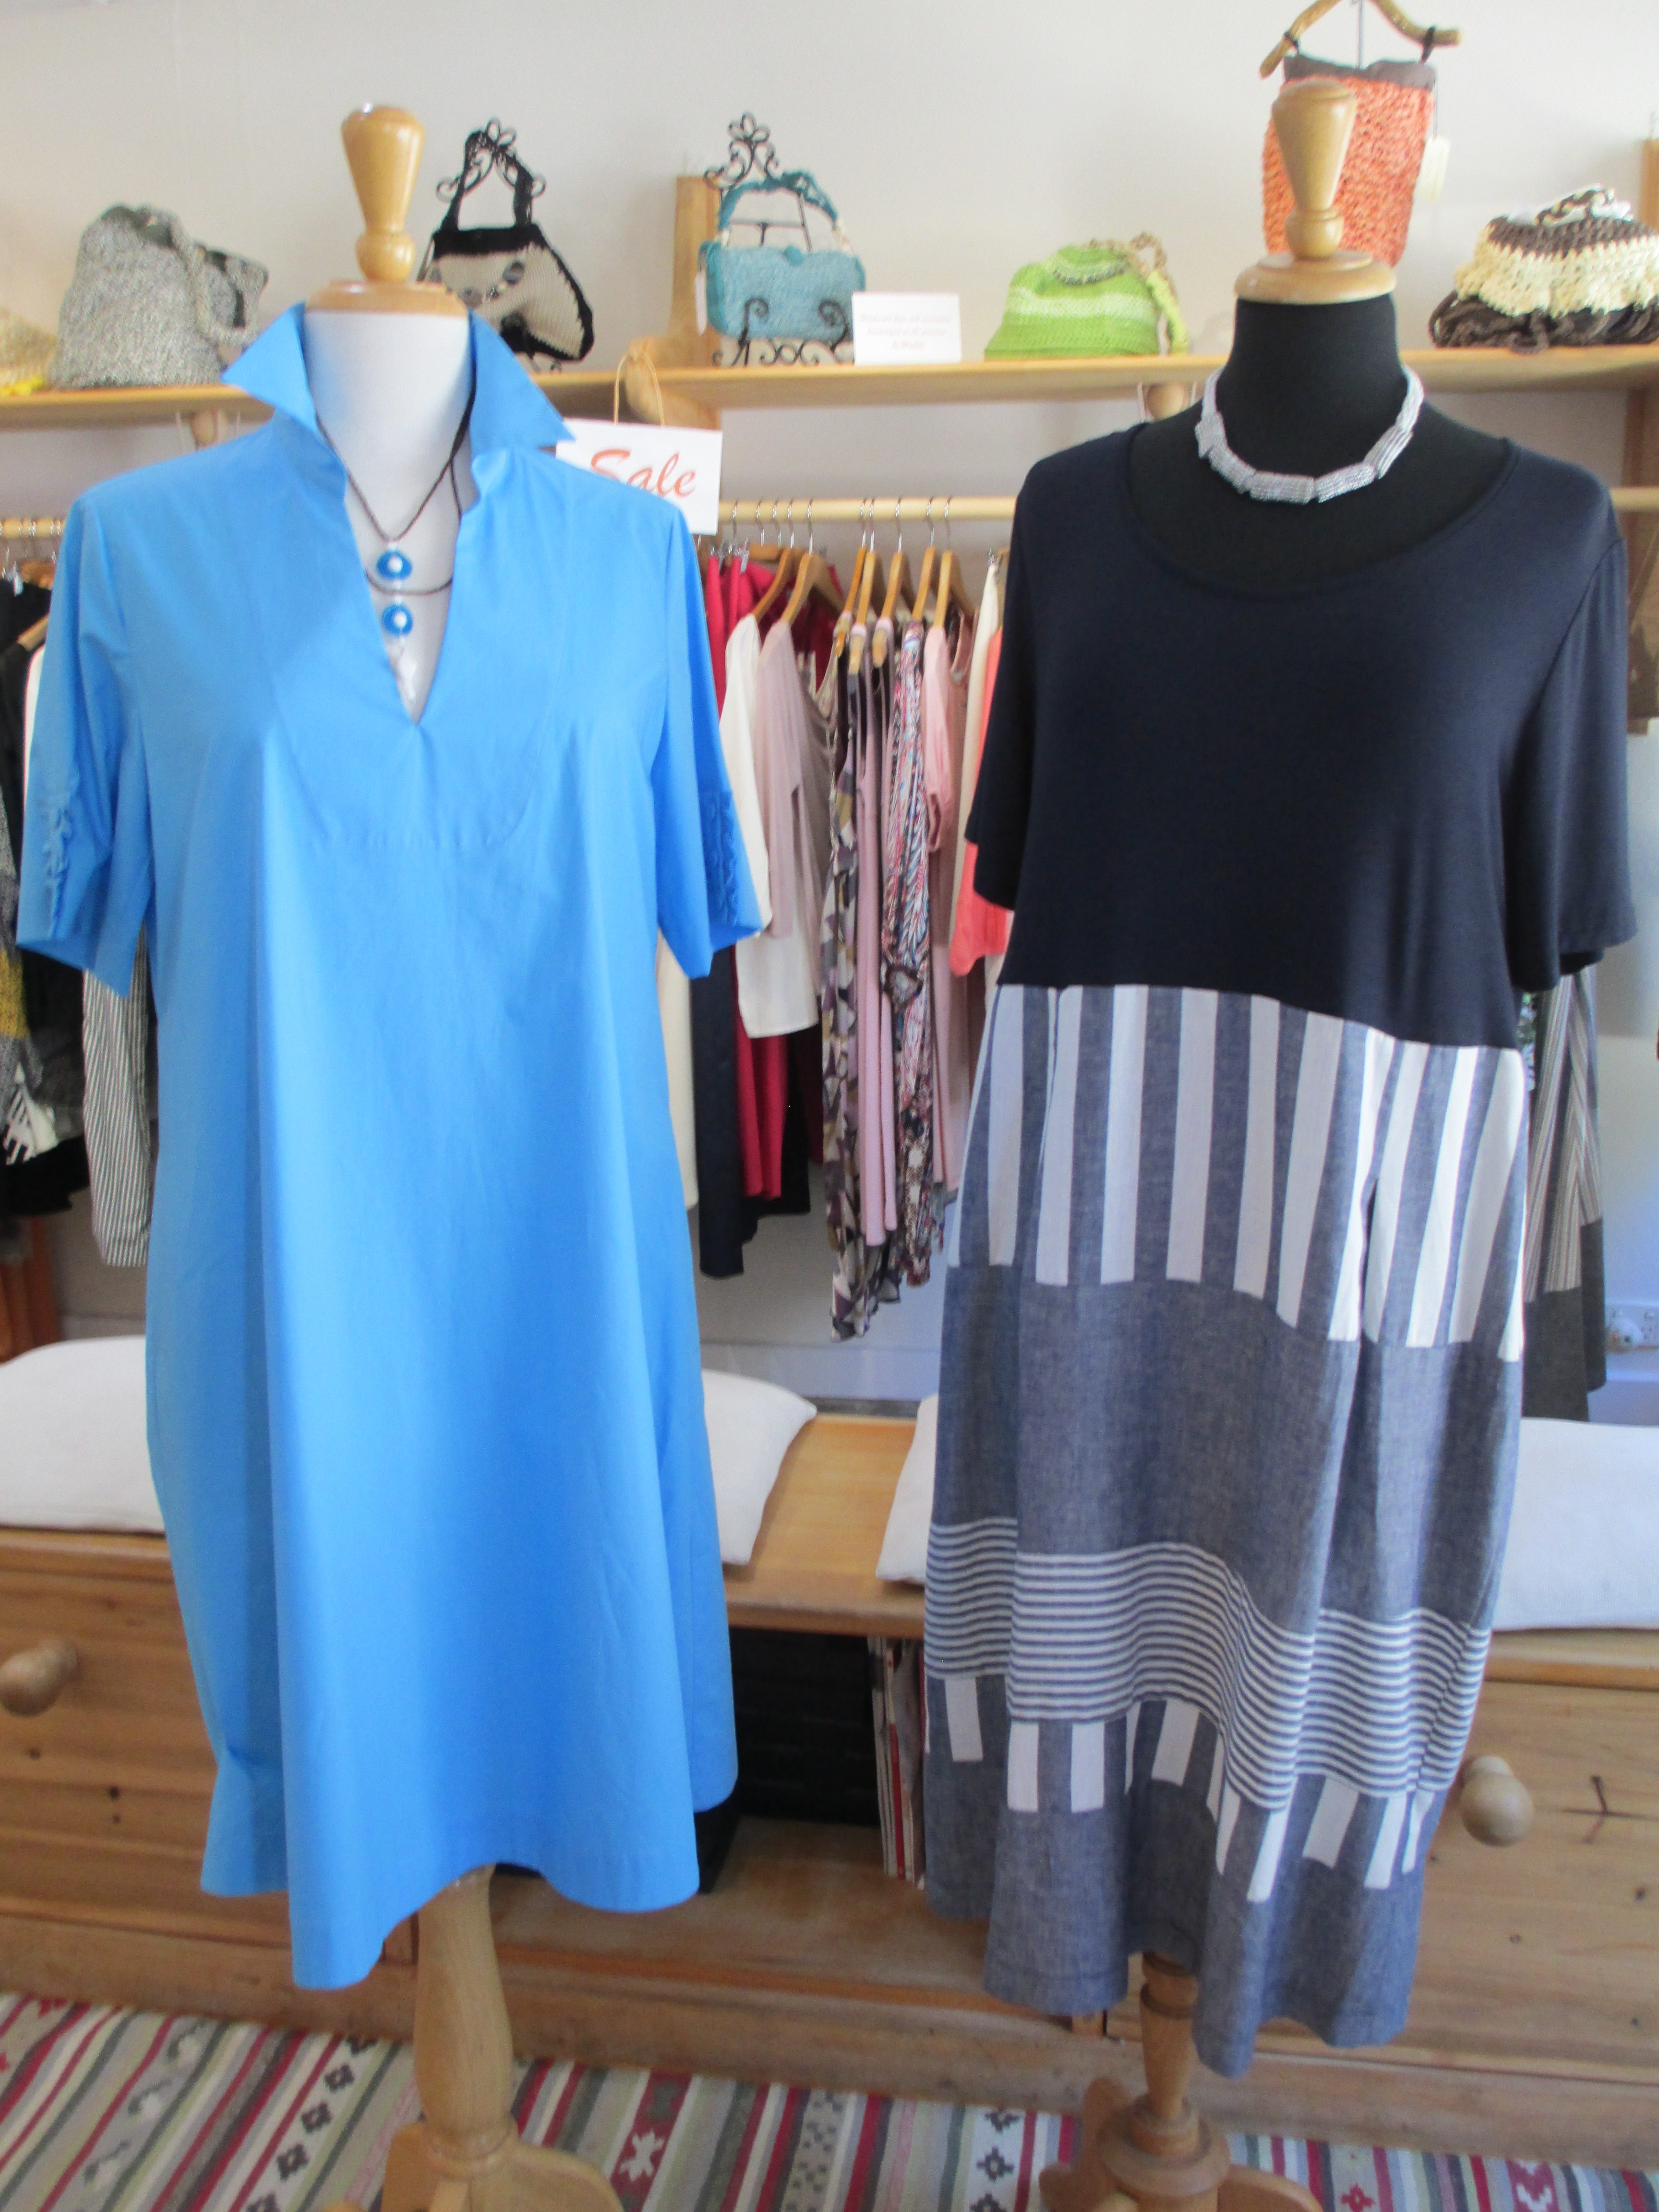 From left to right:  Short sleeve 100% cotton Turquoise dress made in Italy; Brown & Blue YUNGI necklace made of recycle glass, design in Milan Italy and Handmade by Maasai Women in Tanzania.